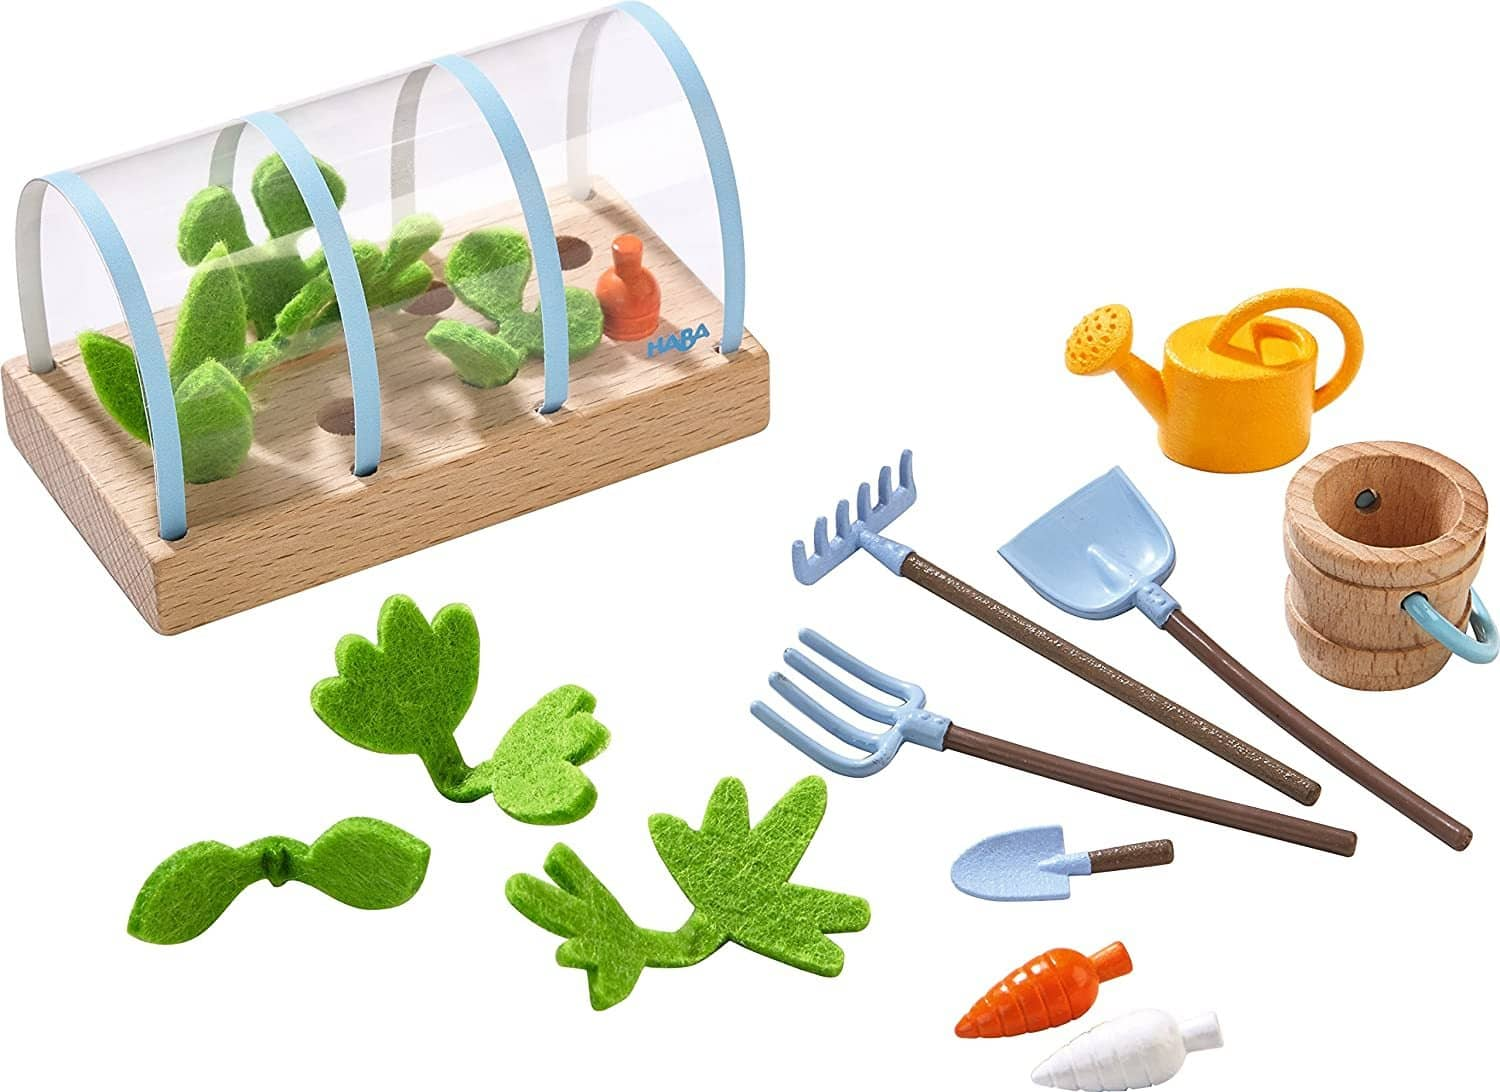 "Little Friends Vegetable Garden Playset Accessory For 4"" Bendy Doll Figures-Kidding Around NYC"